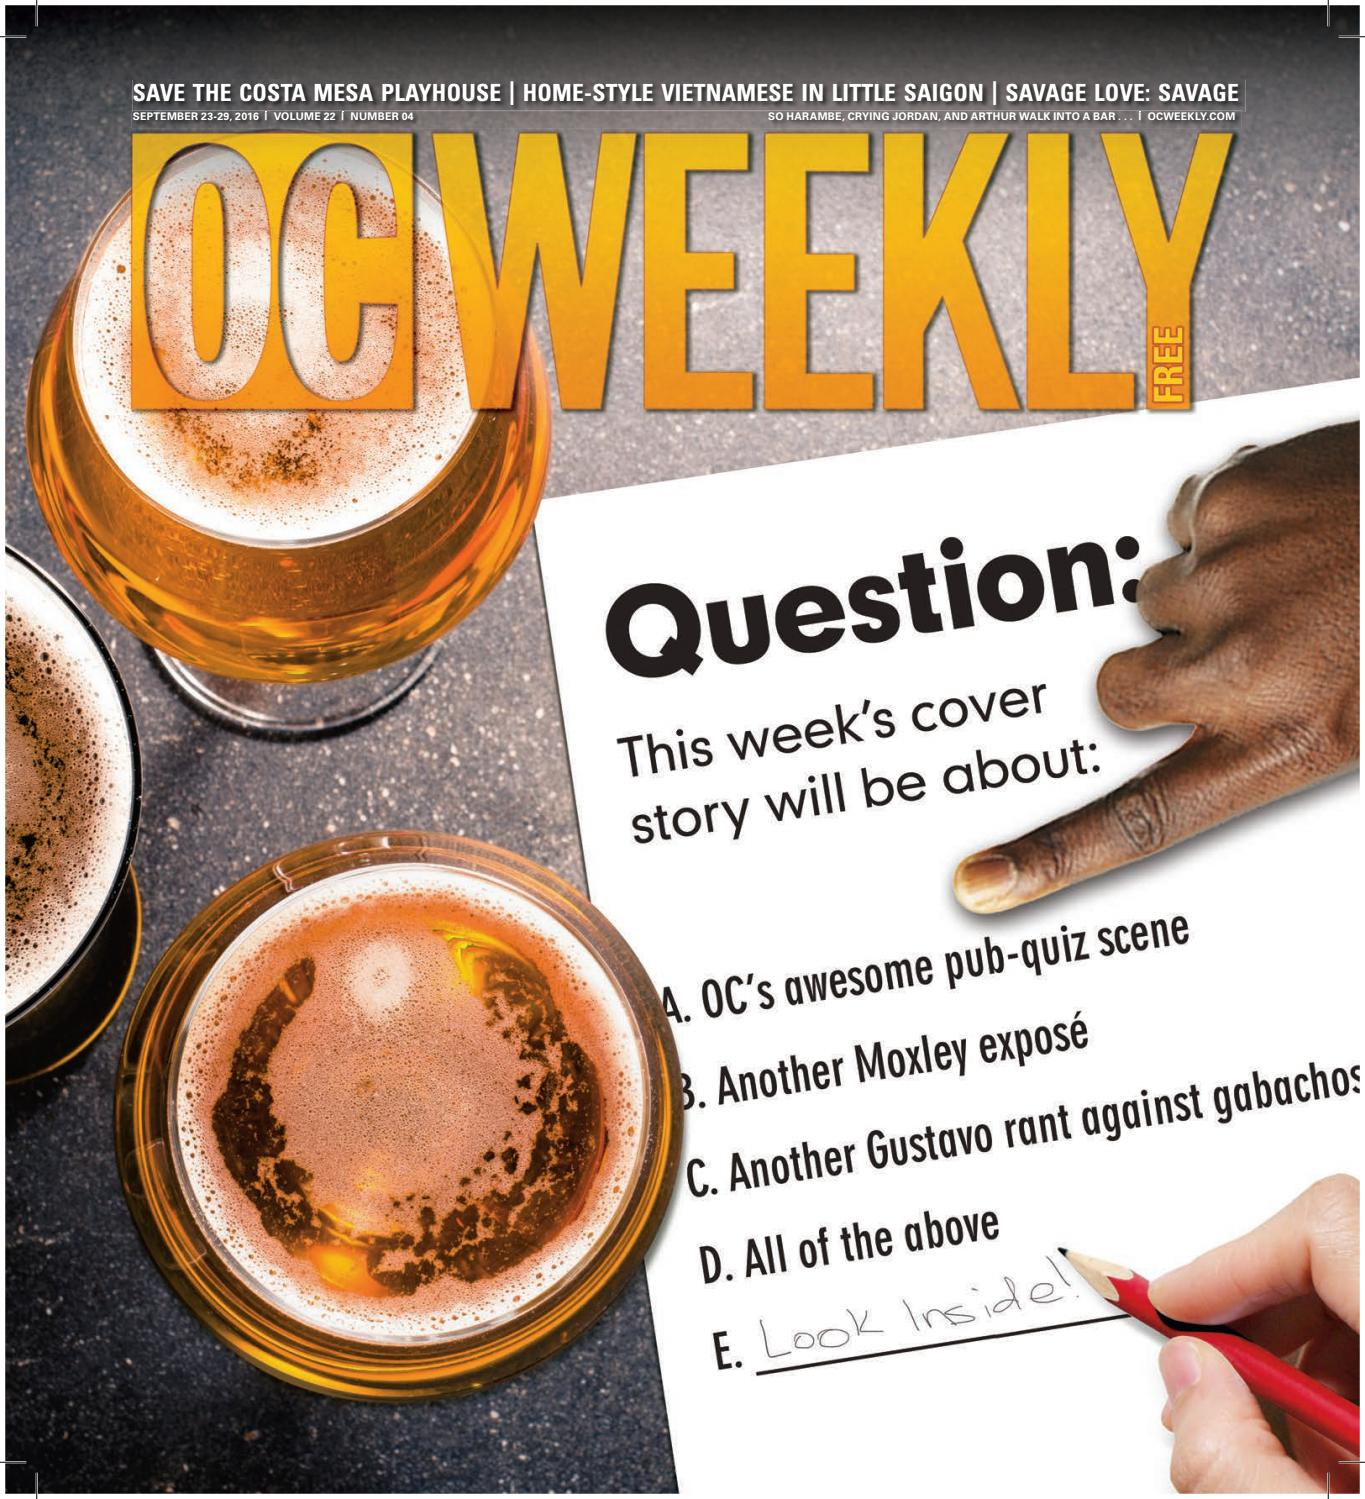 September 22, 2016 – OC Weekly by Duncan McIntosh Company